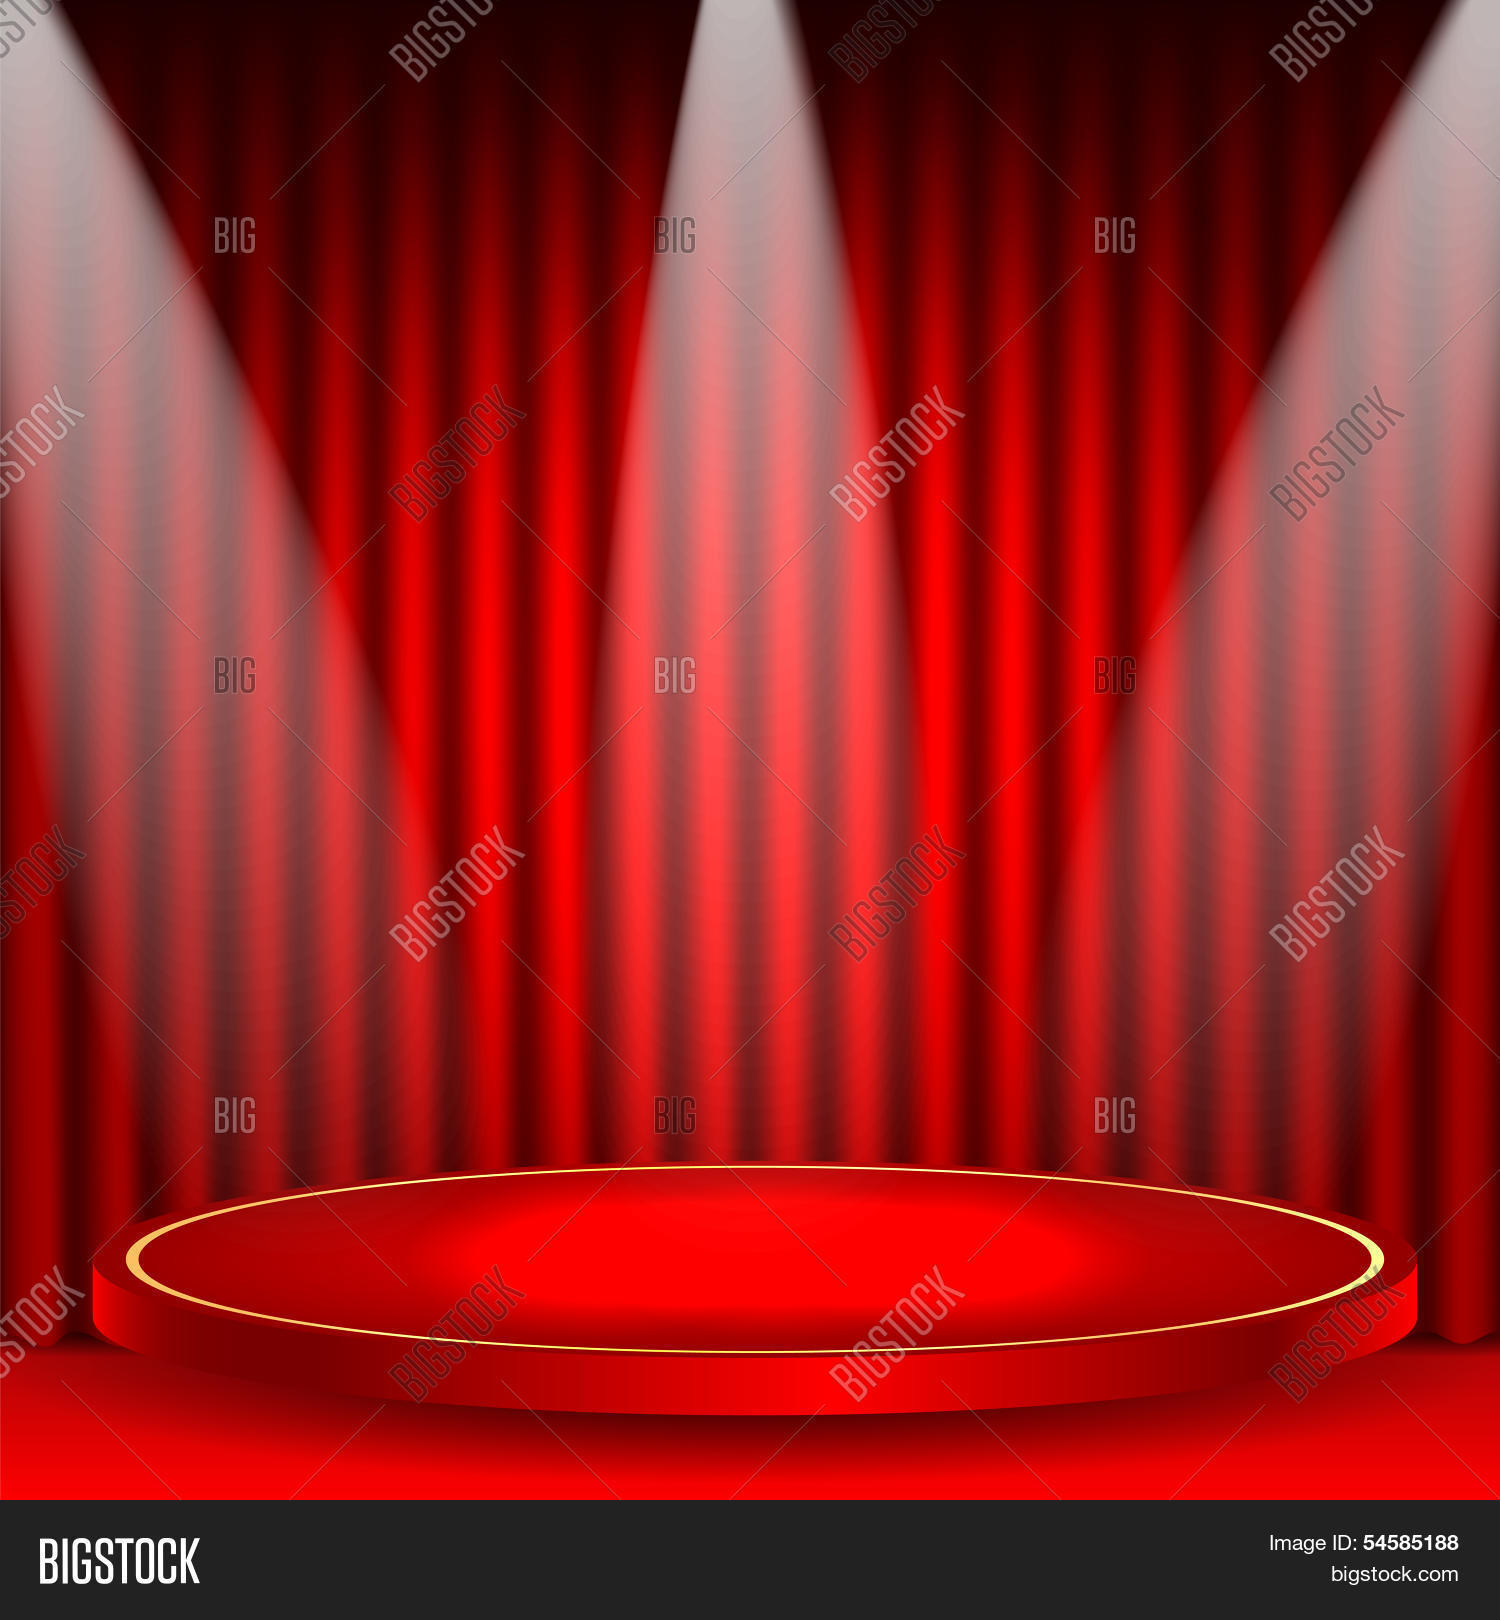 Theatrical Background Scene And Red Curtains Illuminated Floodlights Podium On A Backgroun Image Stock Photo 54585188